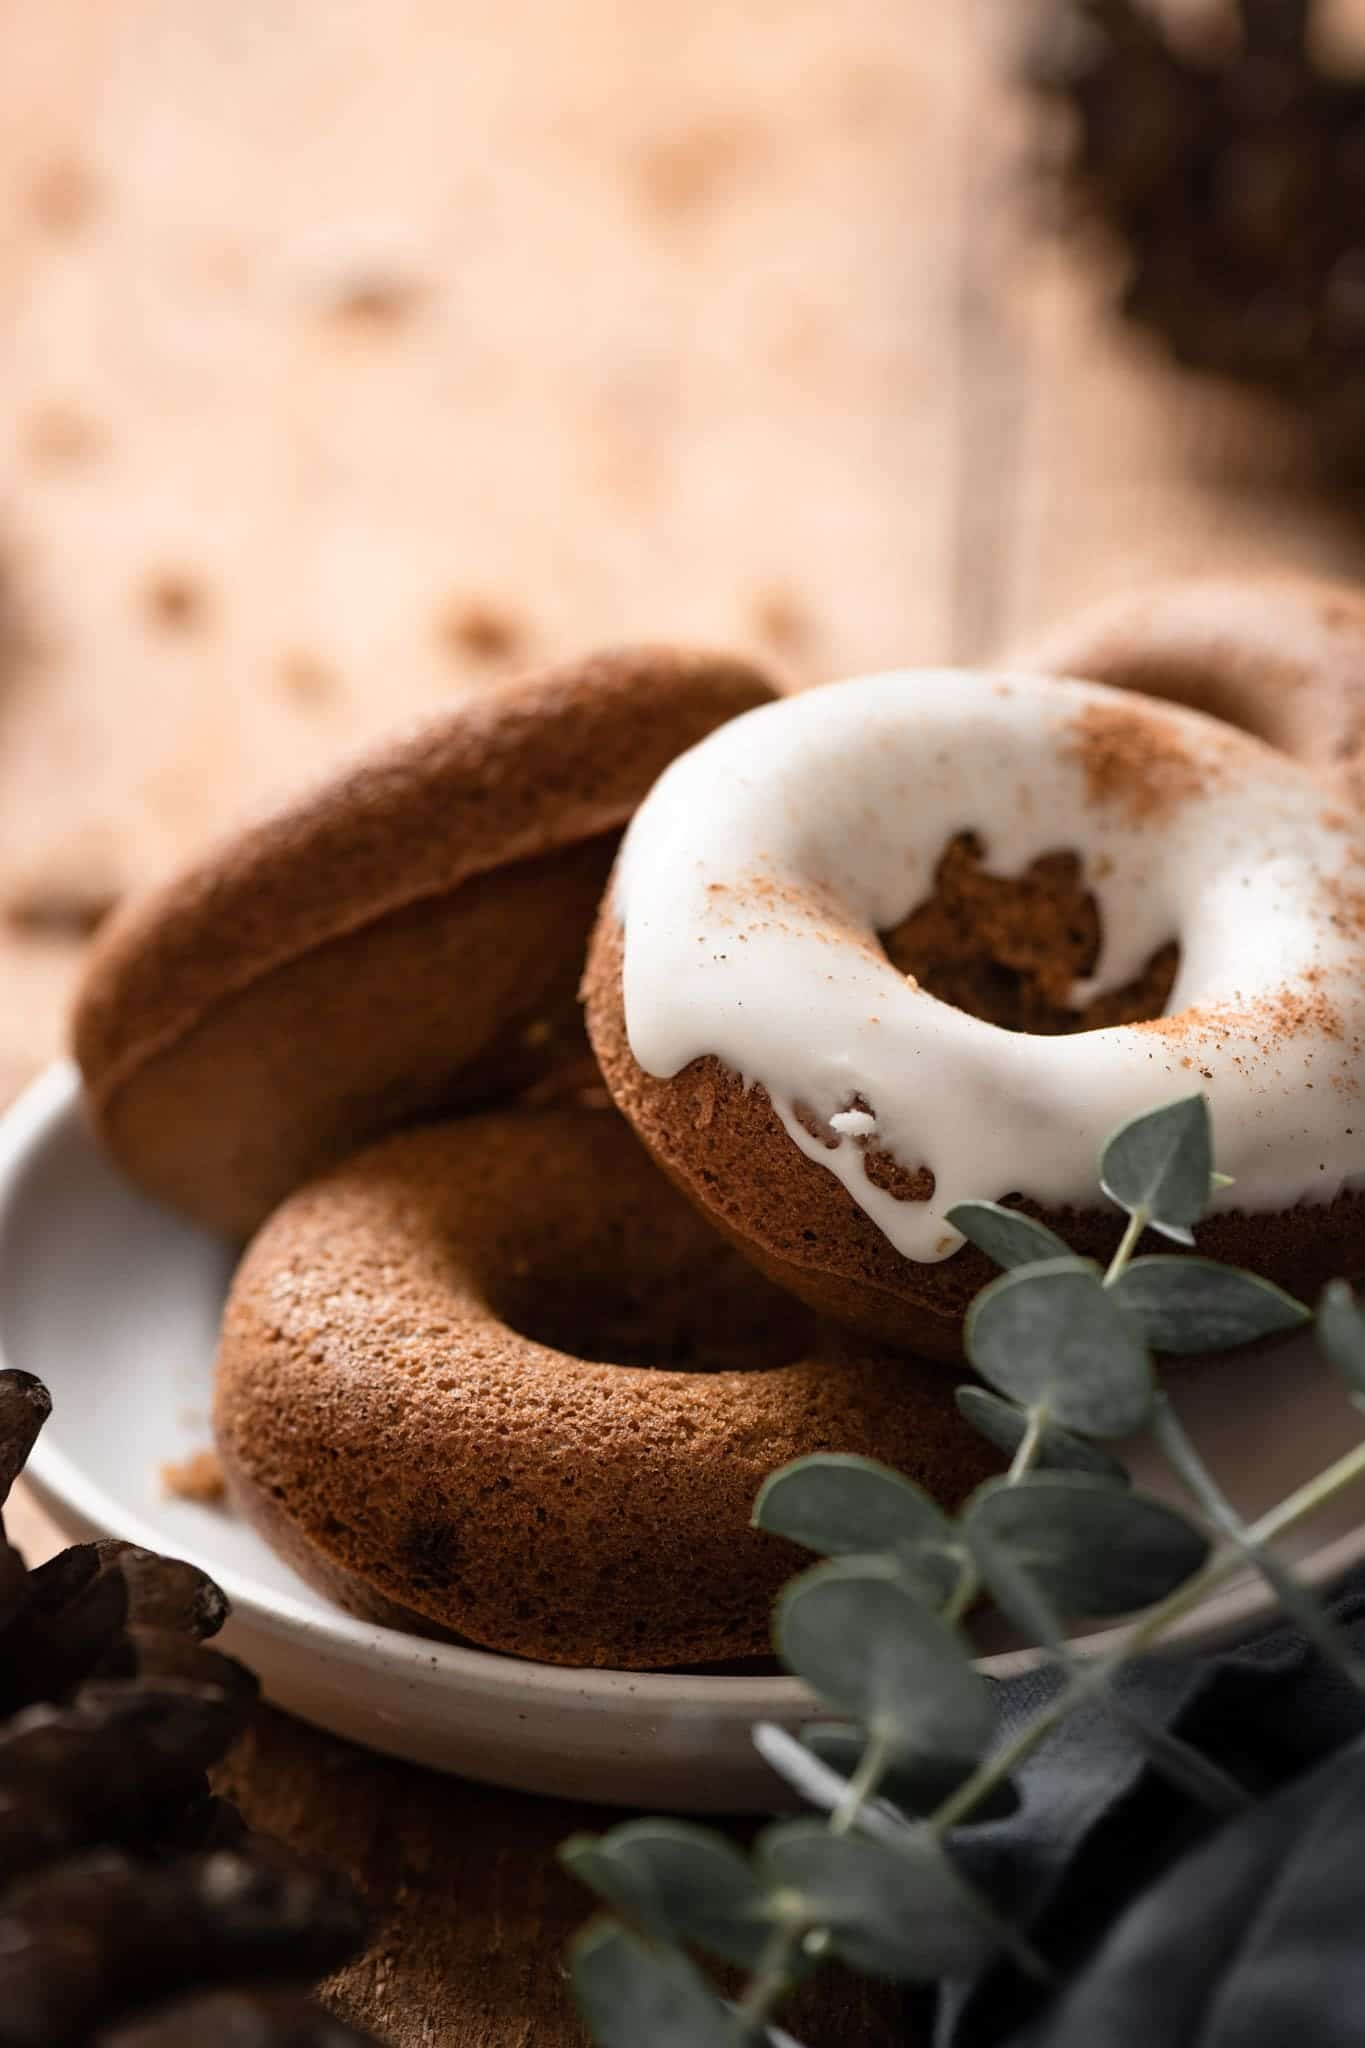 Homemade Gingerbread Doughnuts with vanilla glaze.